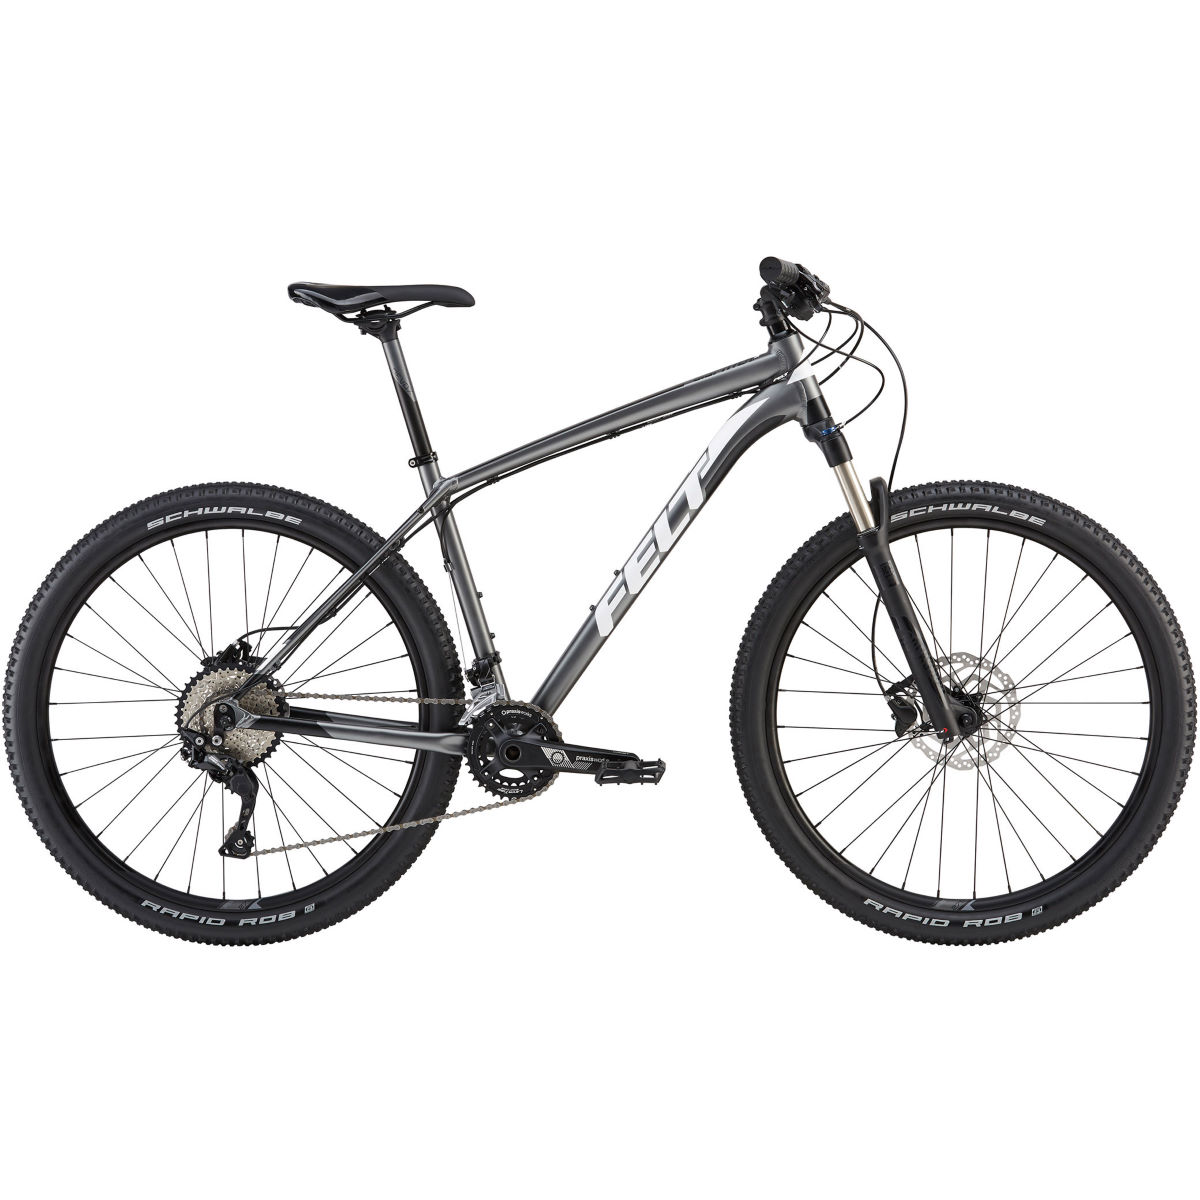 Felt Dispatch 7/50 (2018) XC Hardtail Bike - Bicicletas de MTB rígidas